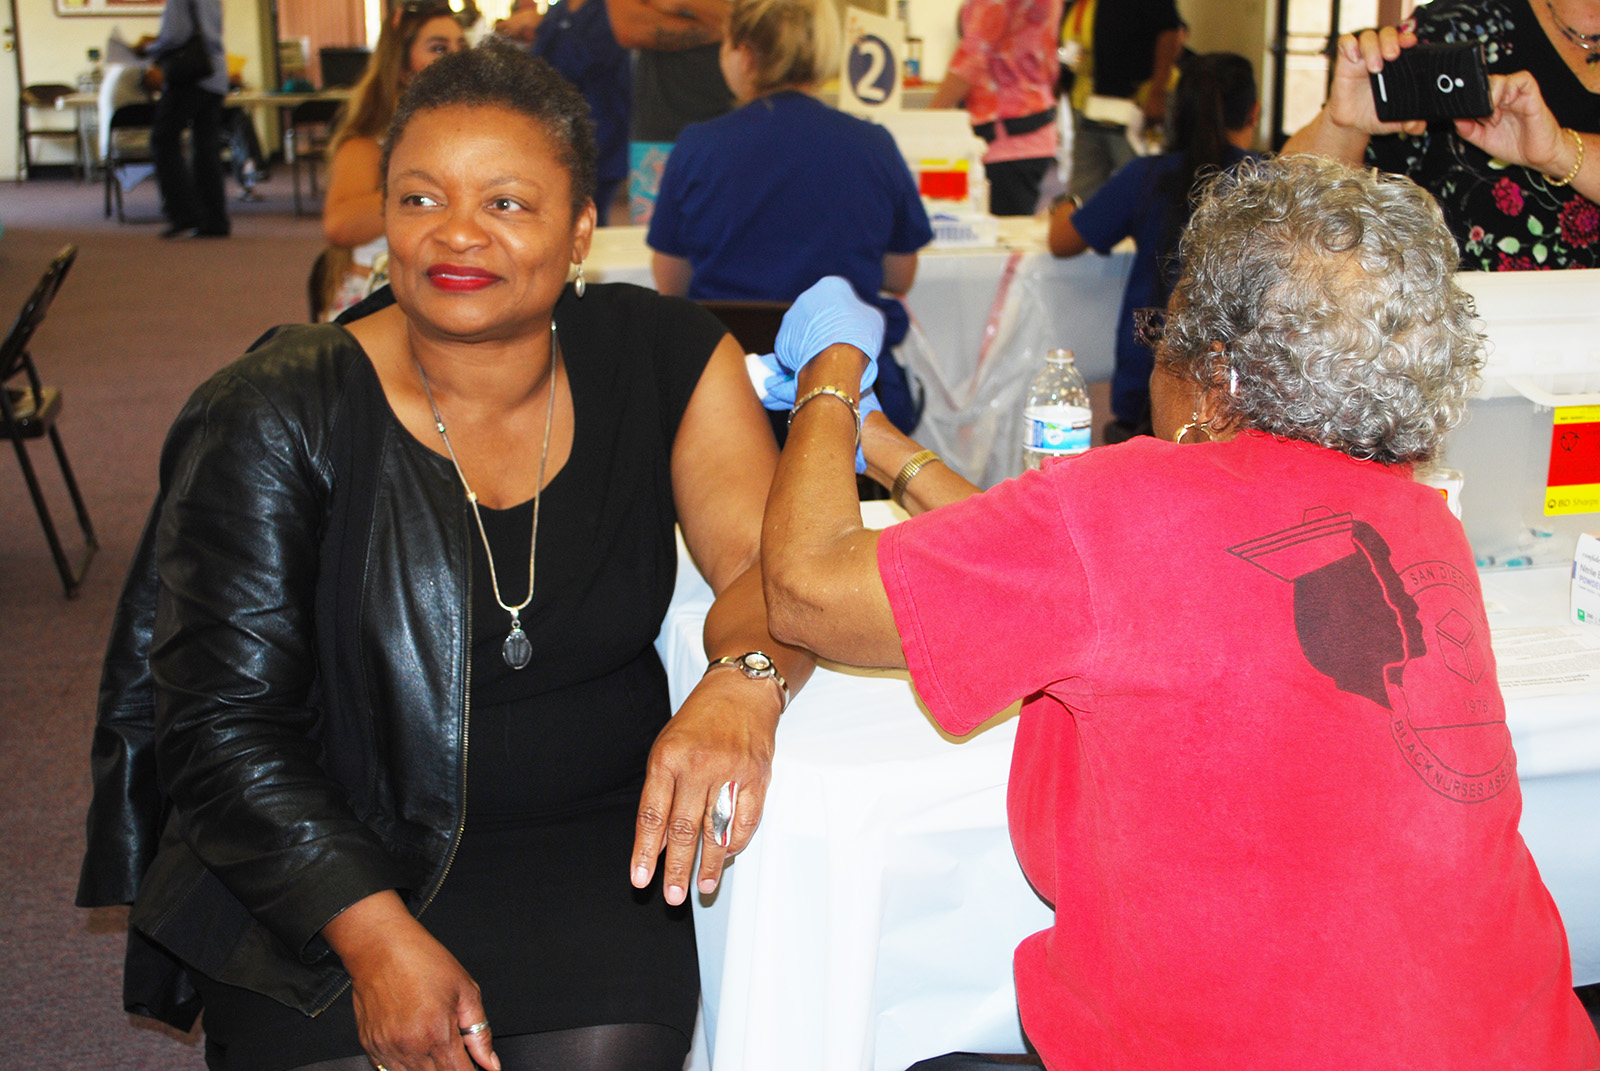 County Public Health Officer Dr. Wilma Wooten gets vaccinated by Syvera Hardy from the San Diego Black Nurses Association.